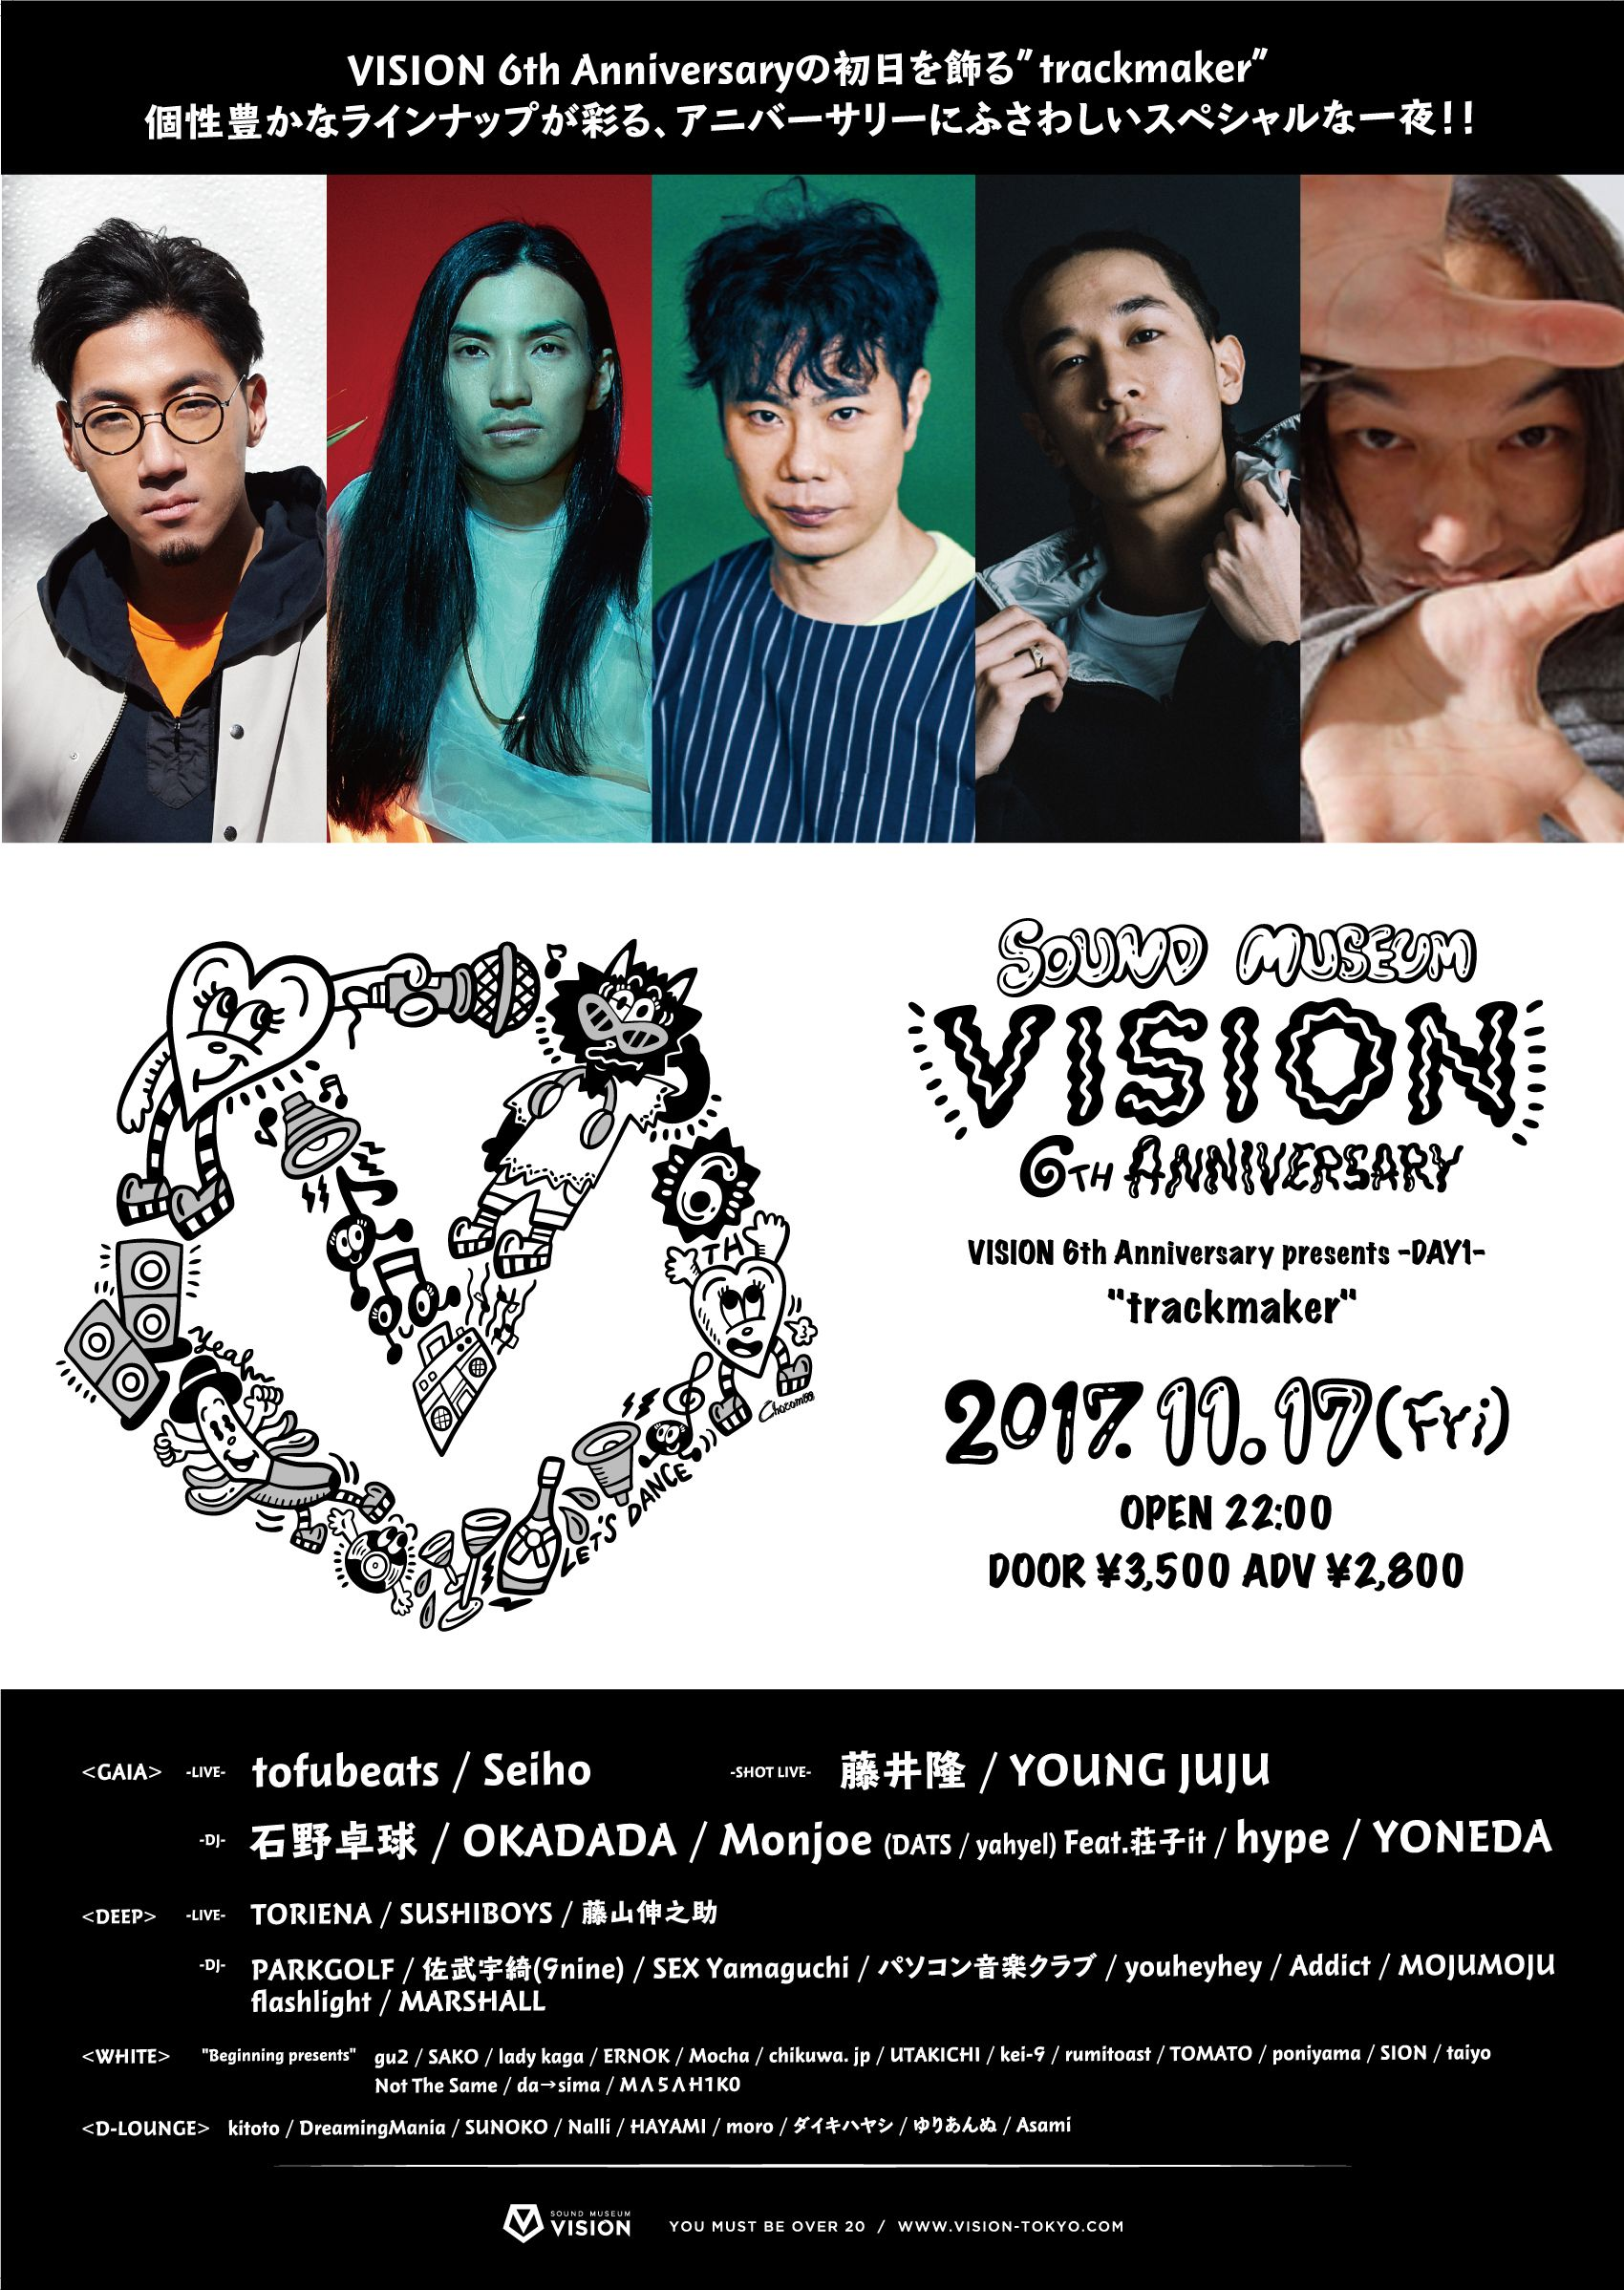 "VISION 6th Anniversary presents ""trackmaker"""